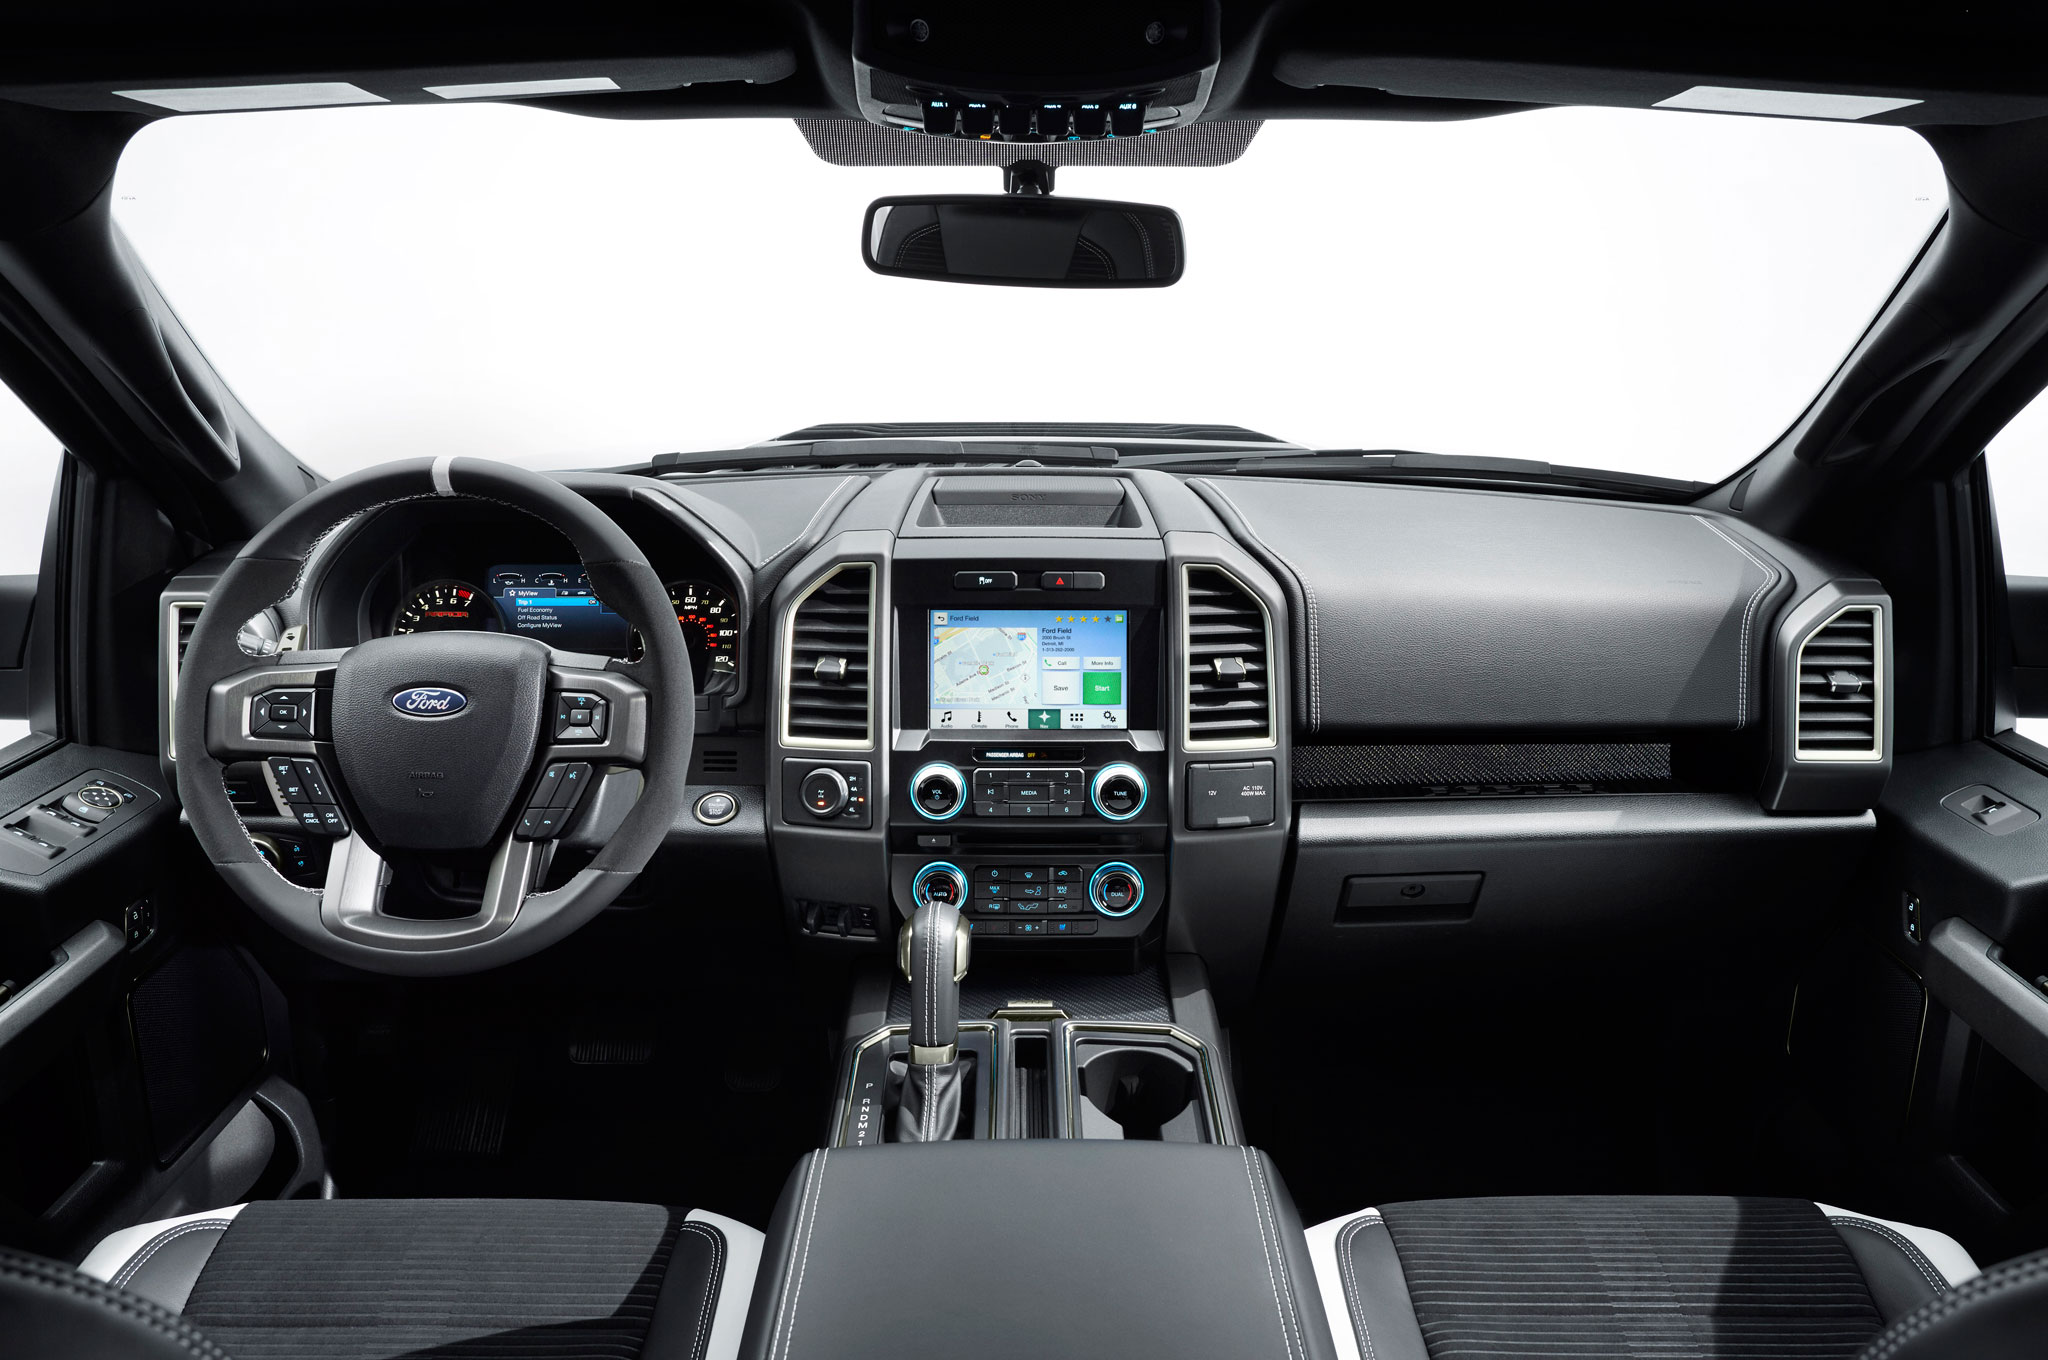 2017 ford f150 raptor dashboard